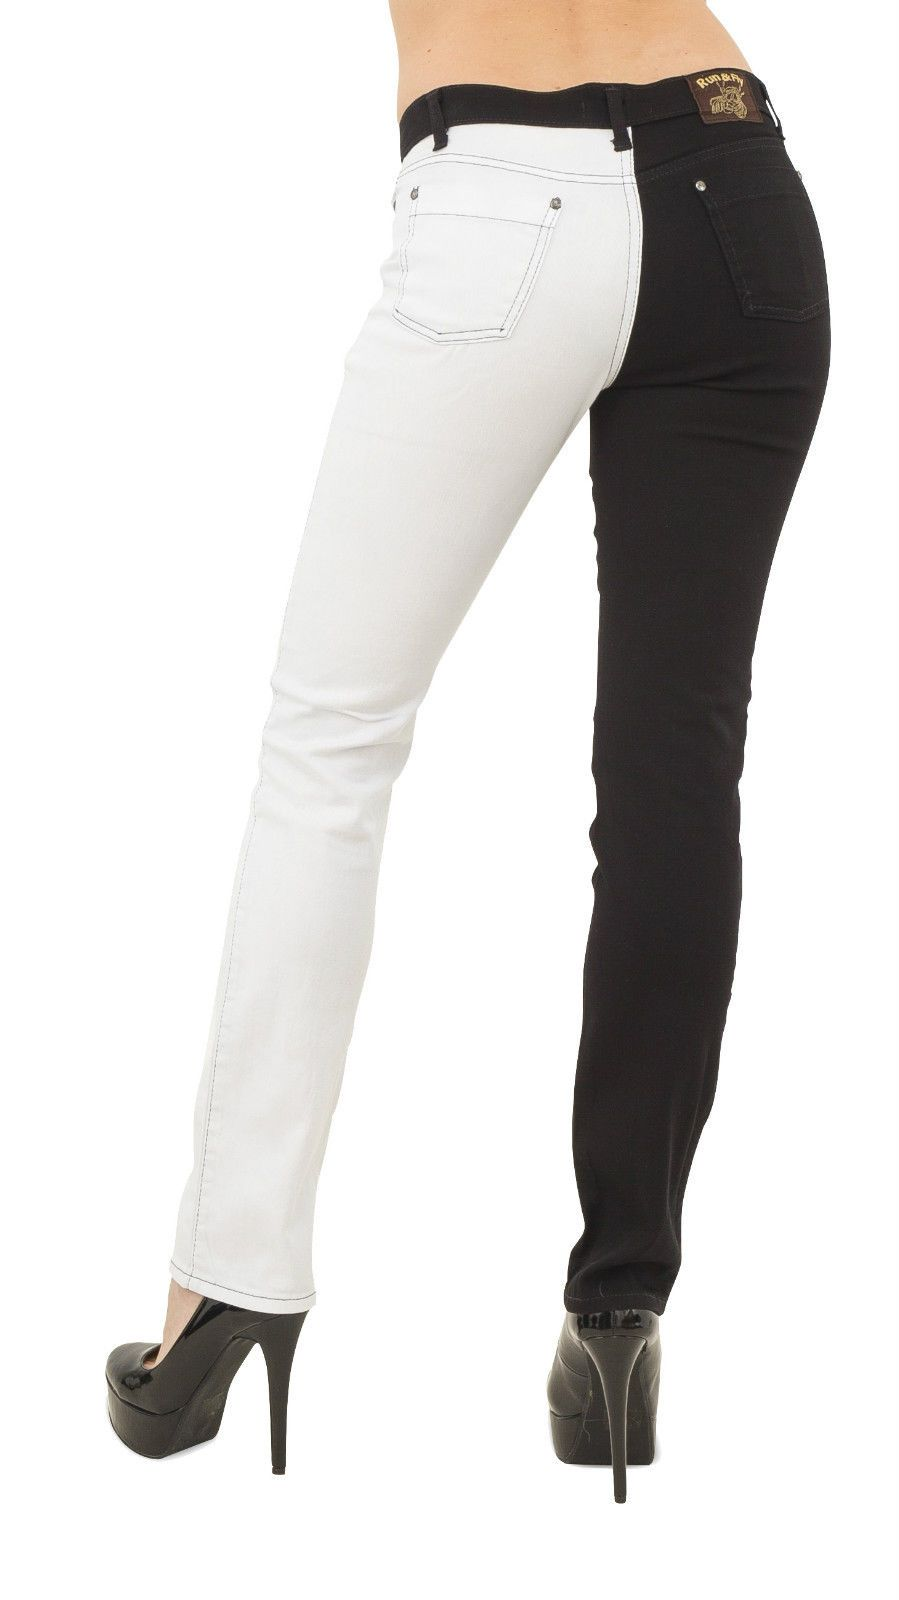 Skinny Black Jeans Womens